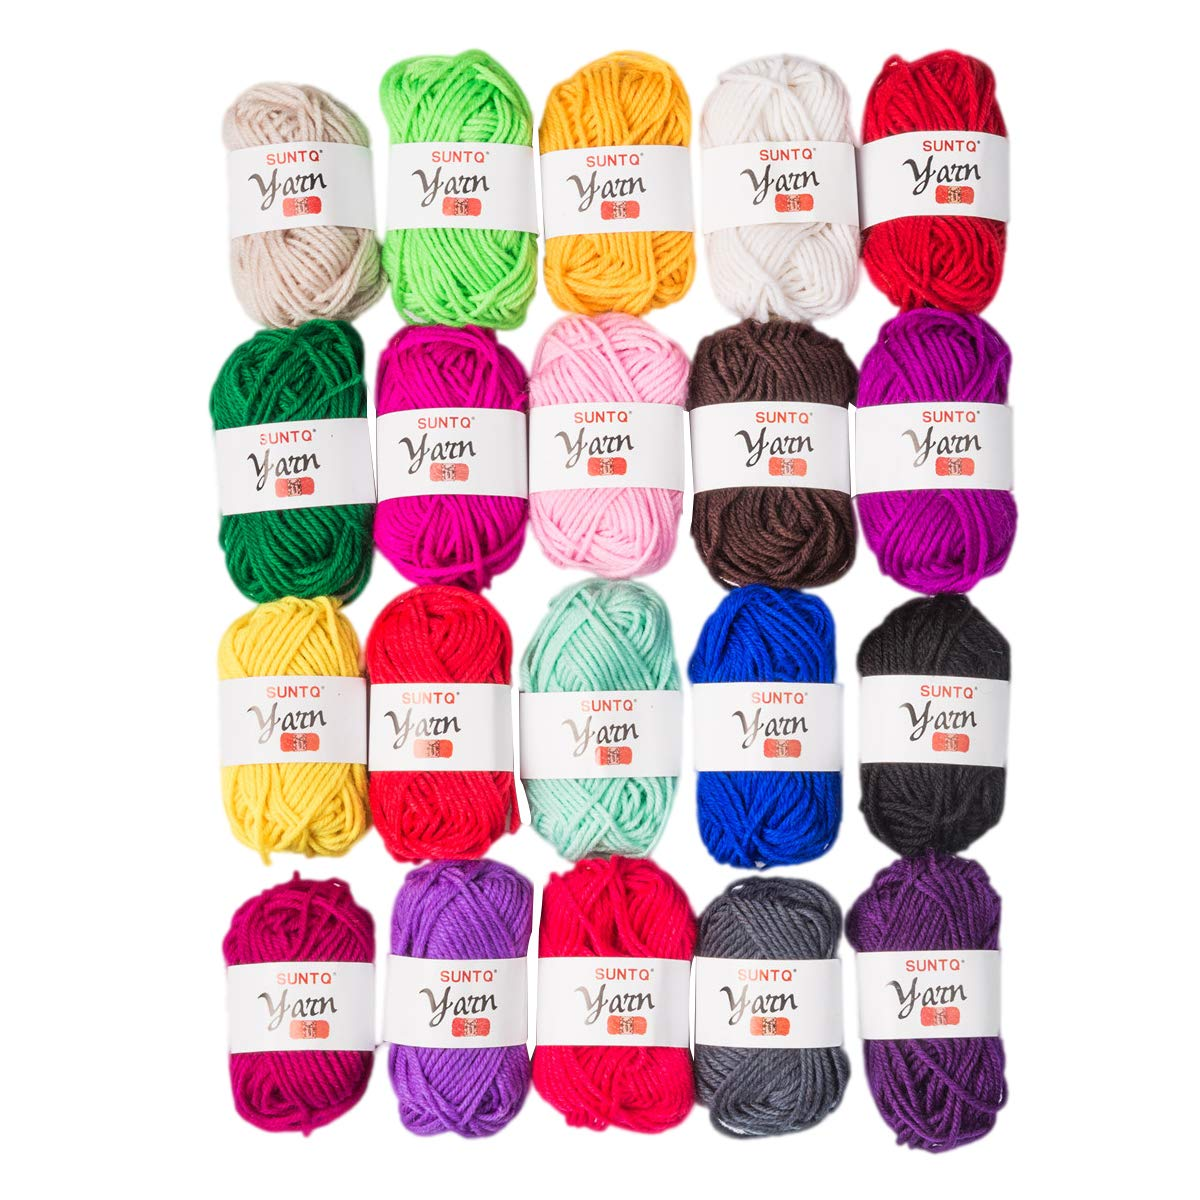 SUNTQ 100% Acrylic Yarn 20 Assorted Colors Skeins Bonbons Yarn for Crochet & Knitting Assorted Rainbow Variety Colored Assortment